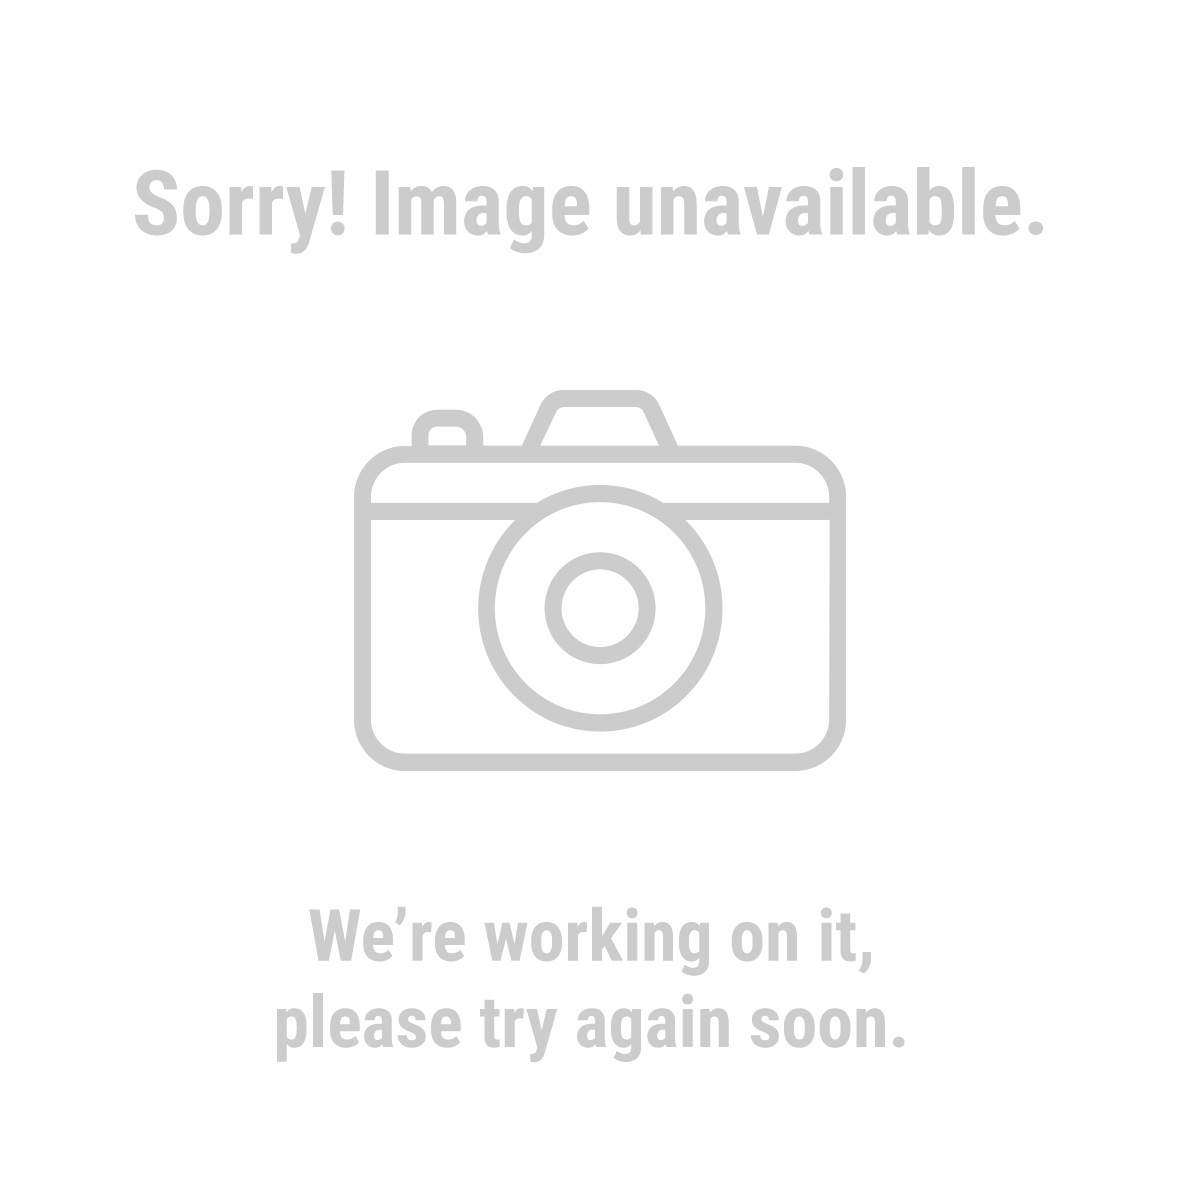 """Central Pneumatic 90478 2-1/2"""" x 10 Gauge Nails, Box of 2500"""